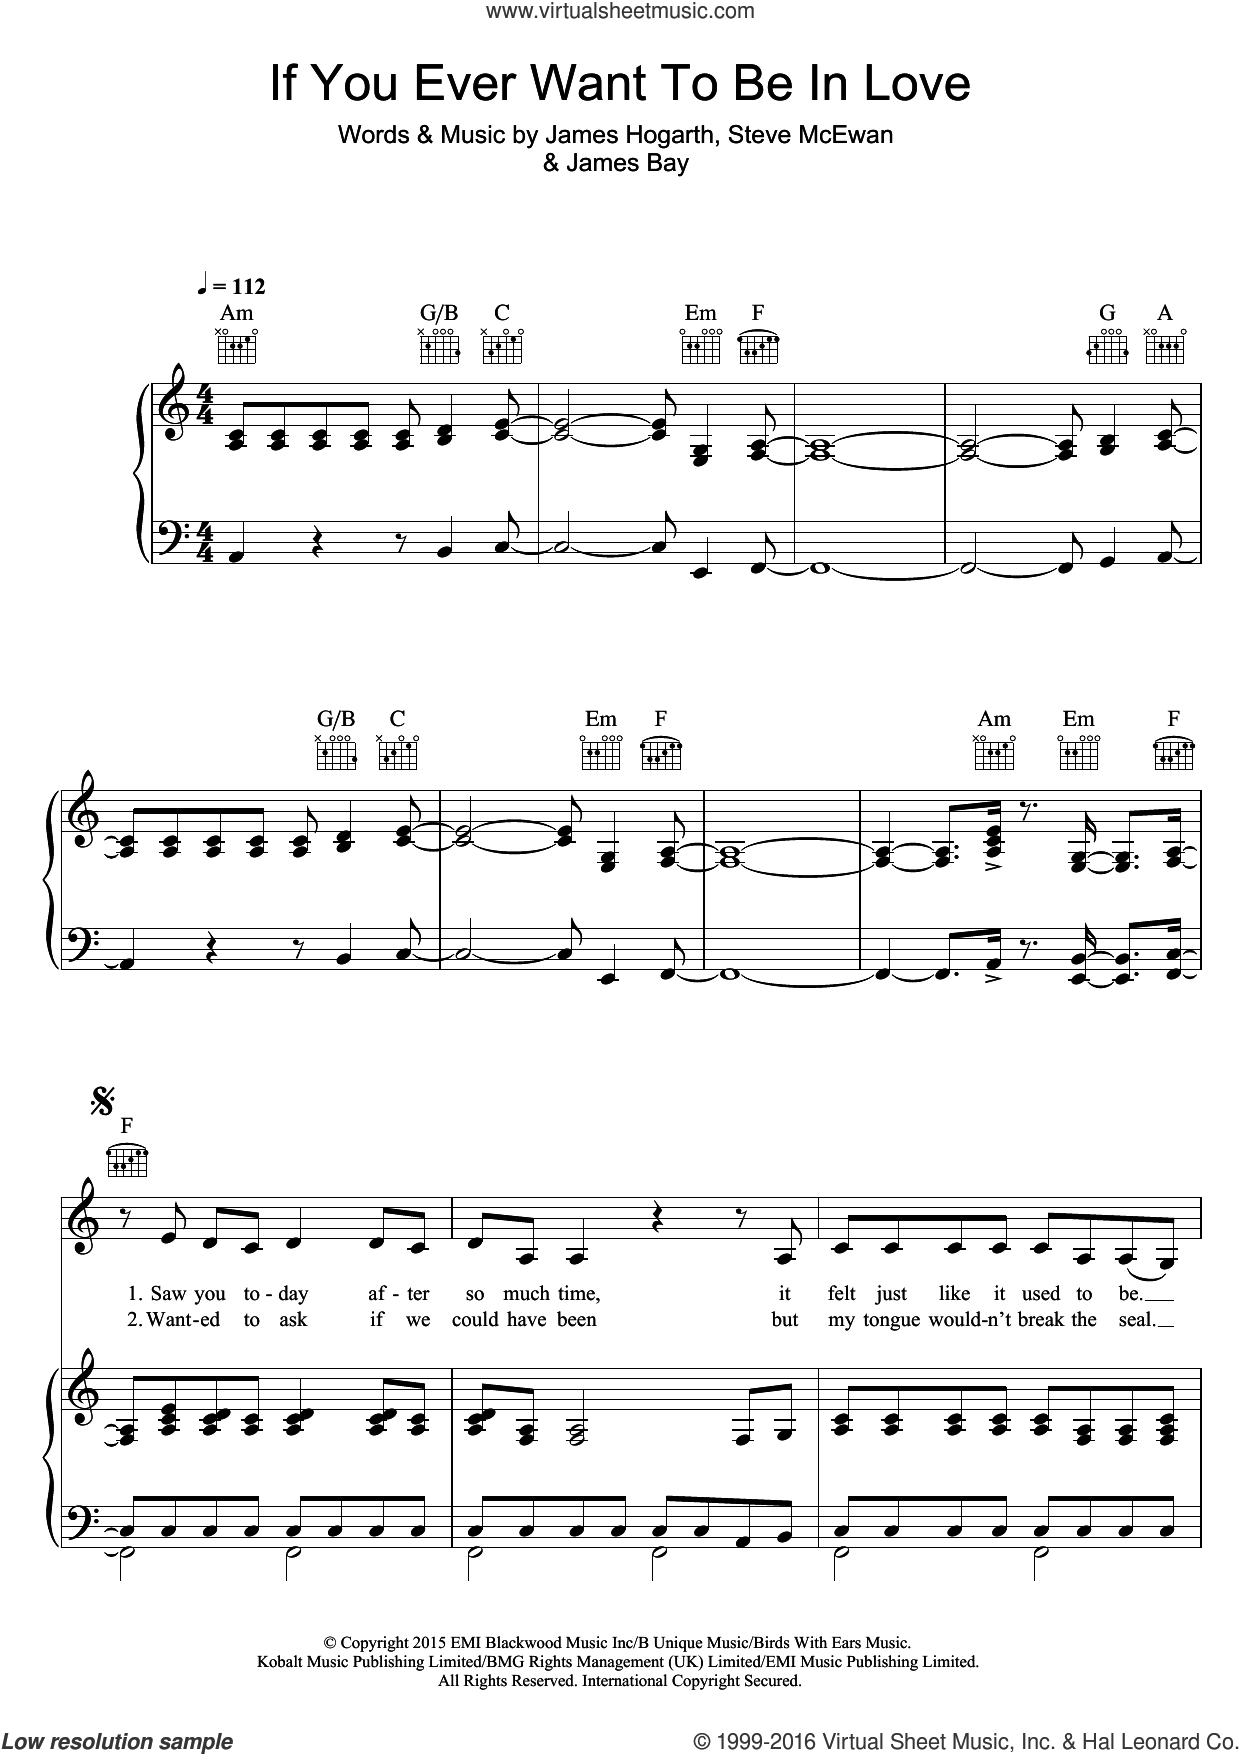 If You Ever Want To Be In Love sheet music for voice, piano or guitar by Steve McEwan, James Bay and James Hogarth. Score Image Preview.